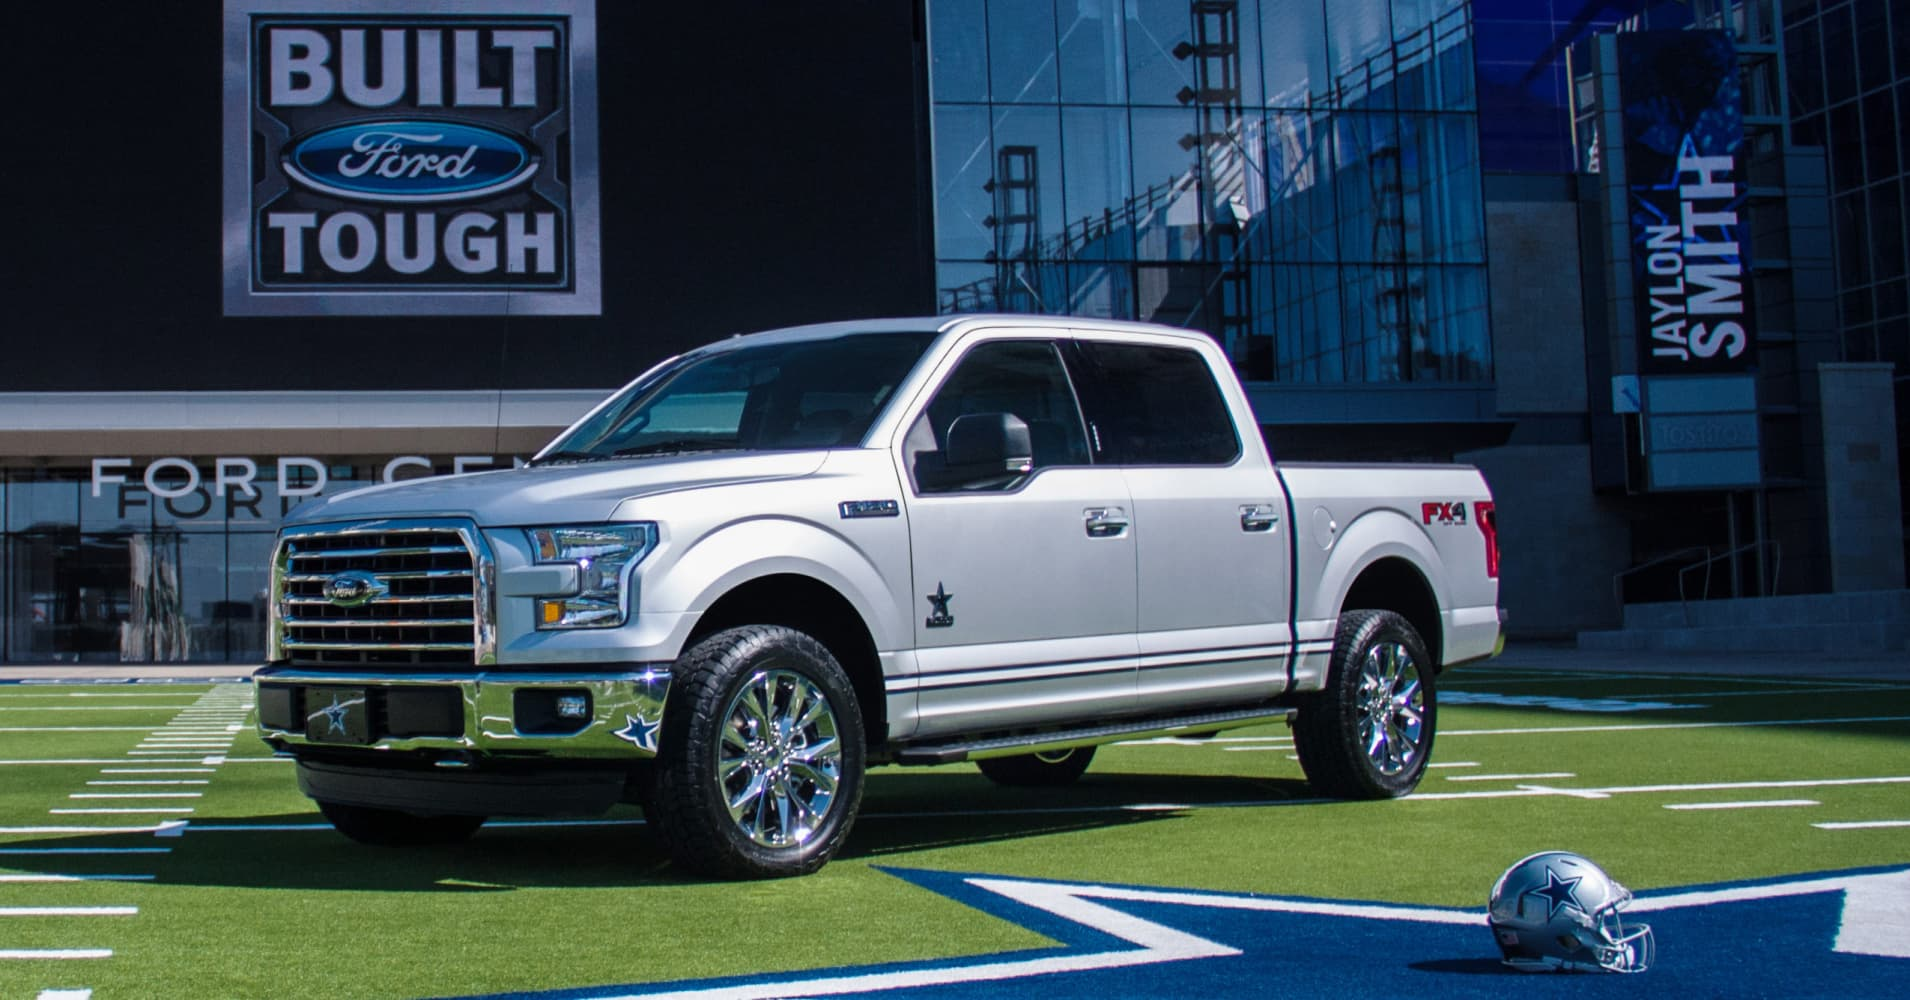 Ford teams up with Dallas Cowboys on limited-edition F-150